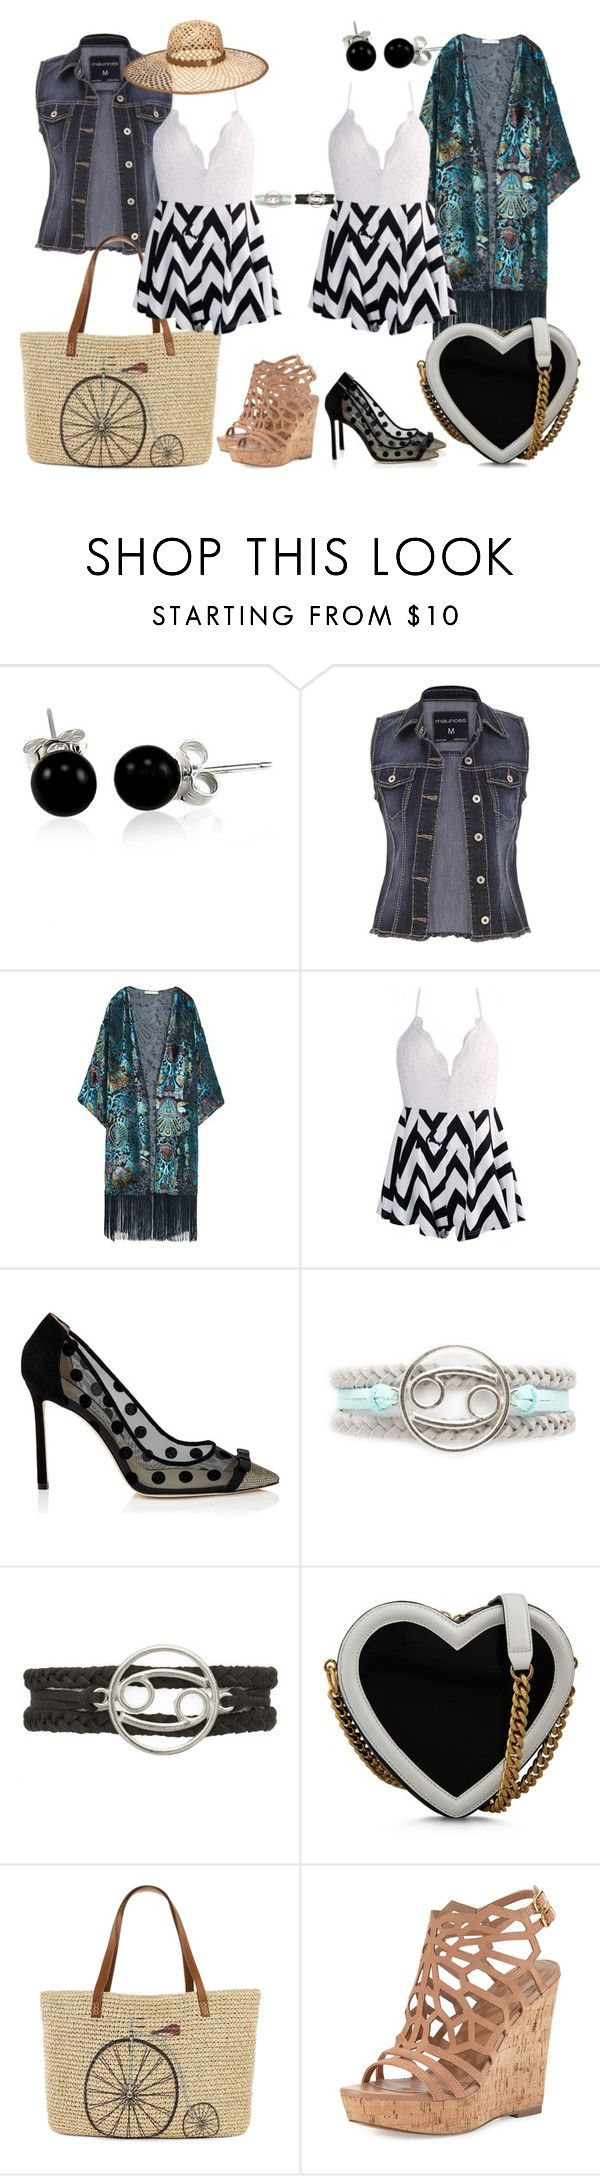 """""""Day to Night: Rompers"""" by janastasiagg ❤ liked on Polyvore featuring Bling Jewelry, maurices, MANGO, STELLA McCARTNEY, Straw Studios, Charles by Charles David, Henri Bendel, DayToNight and romper"""